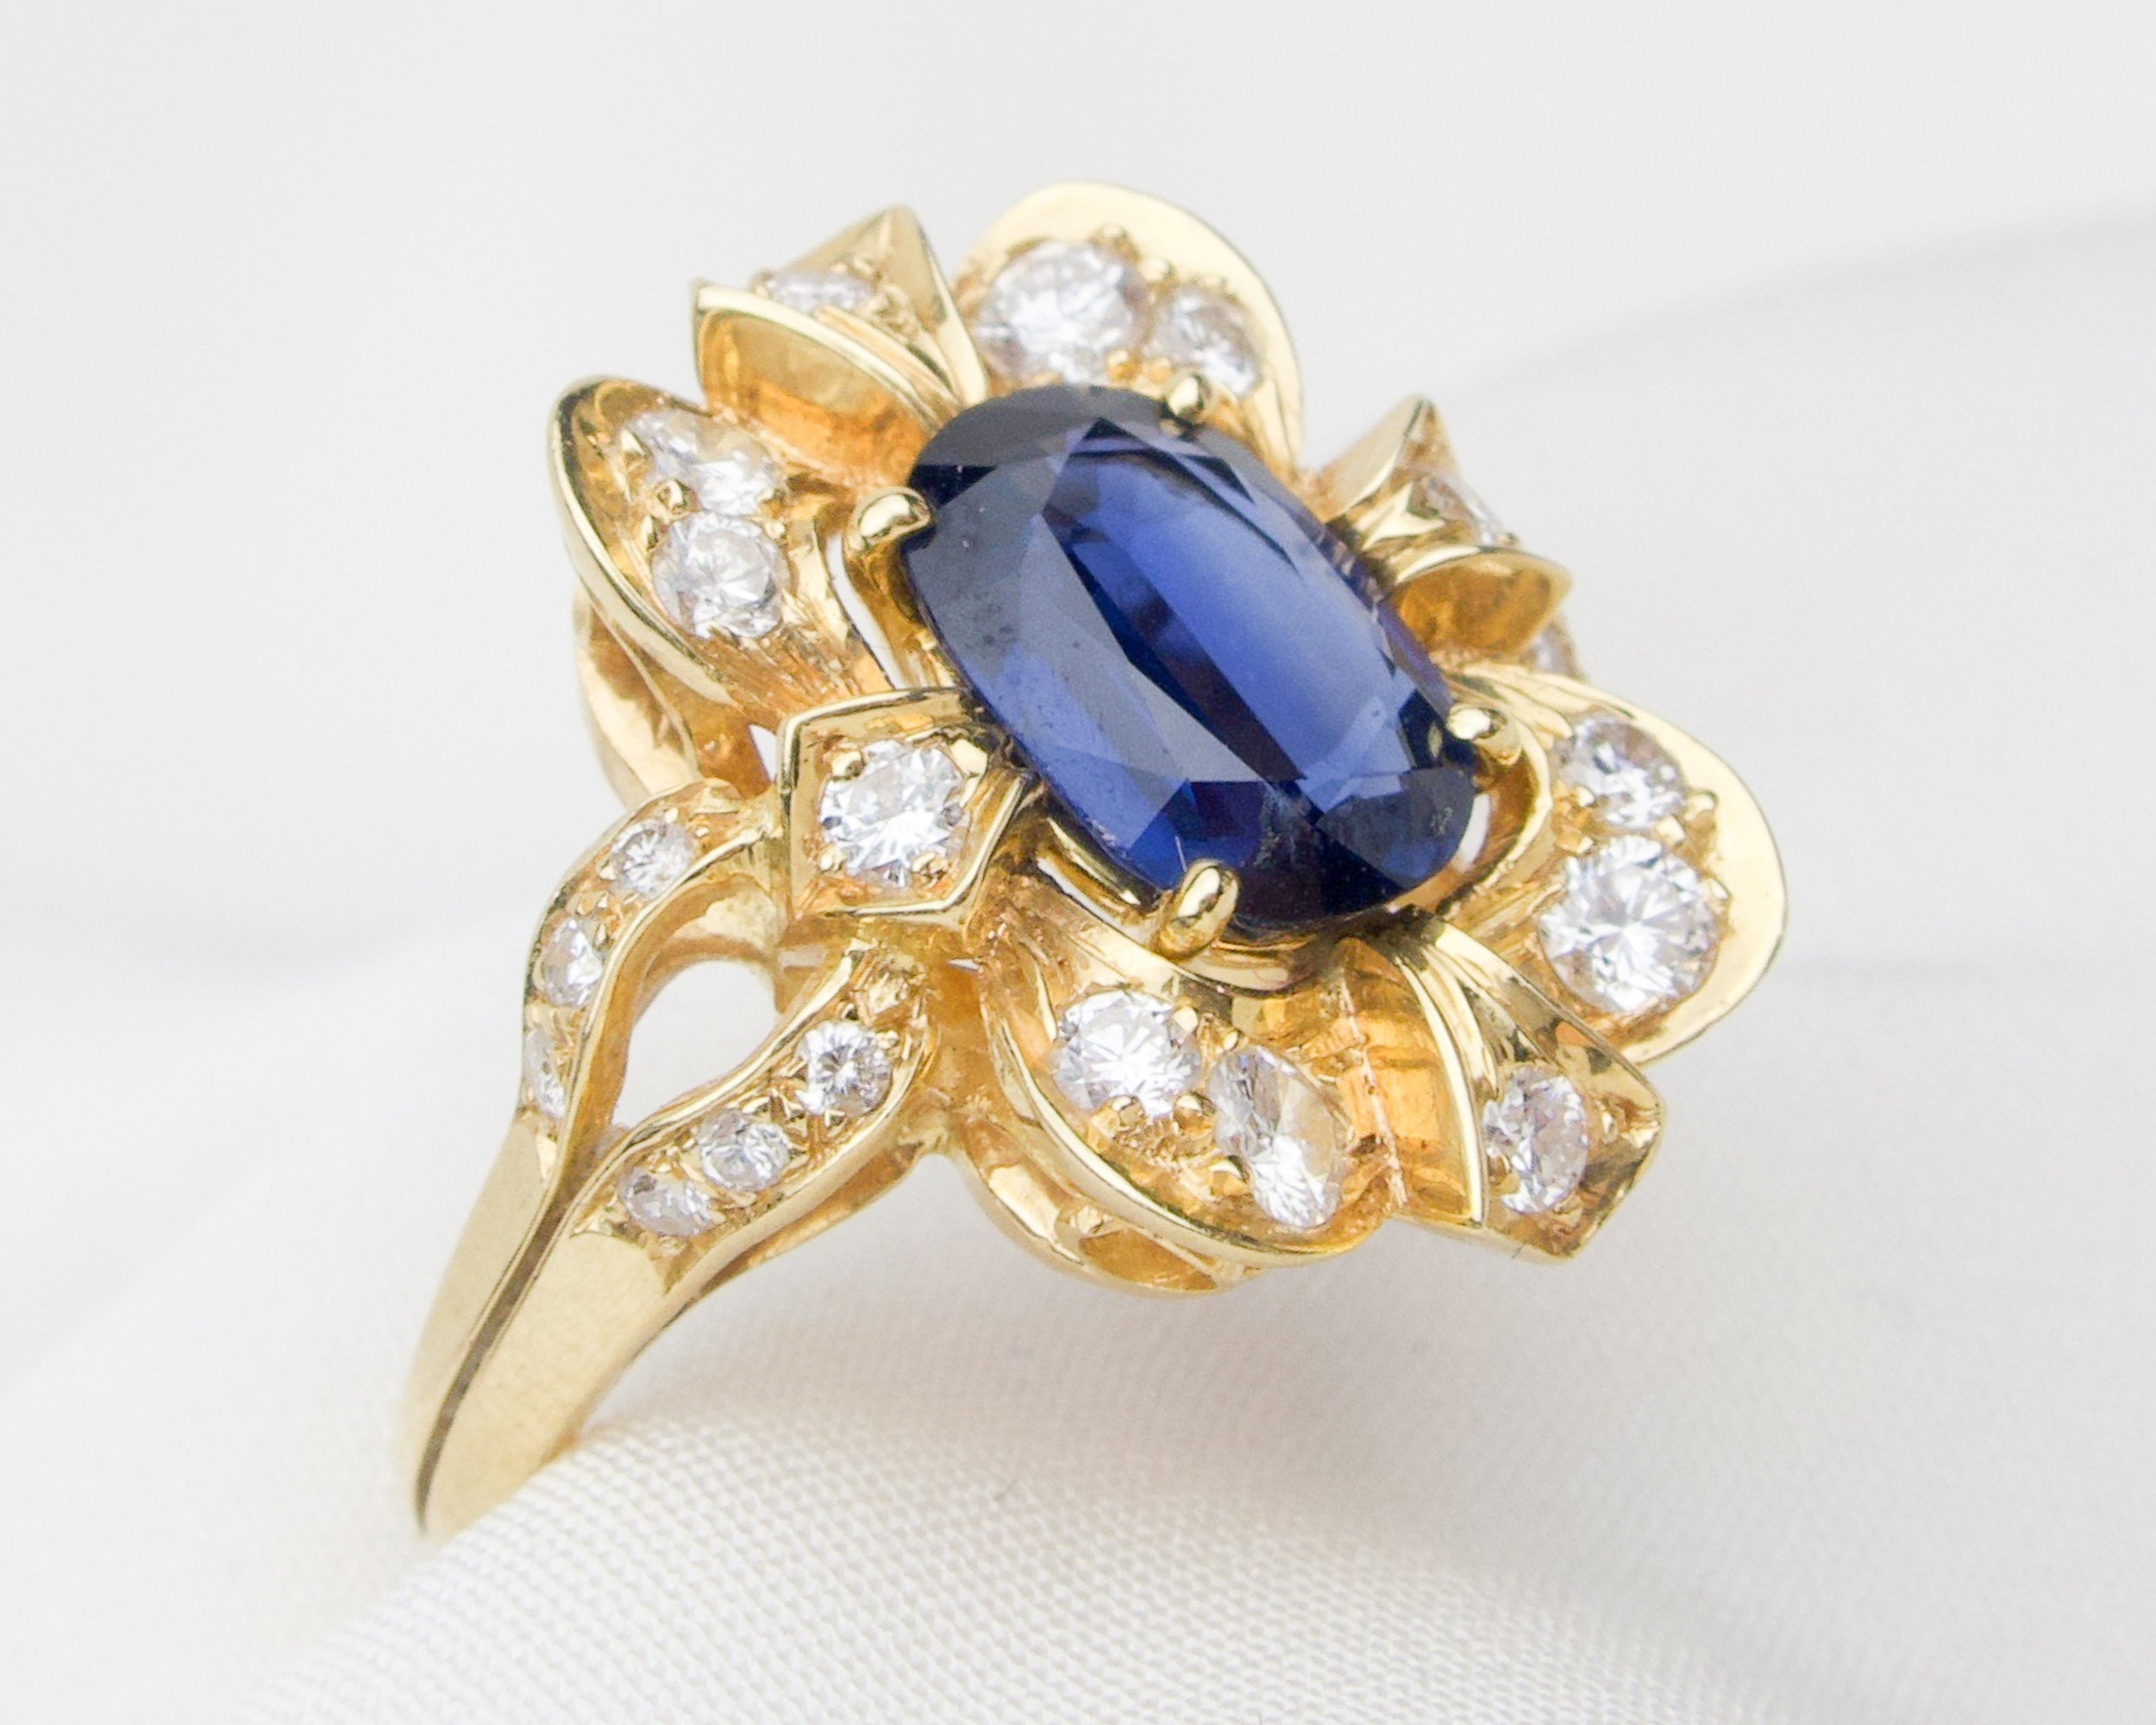 Late-Midcentury Victorian Revival Sapphire and Diamond Ring